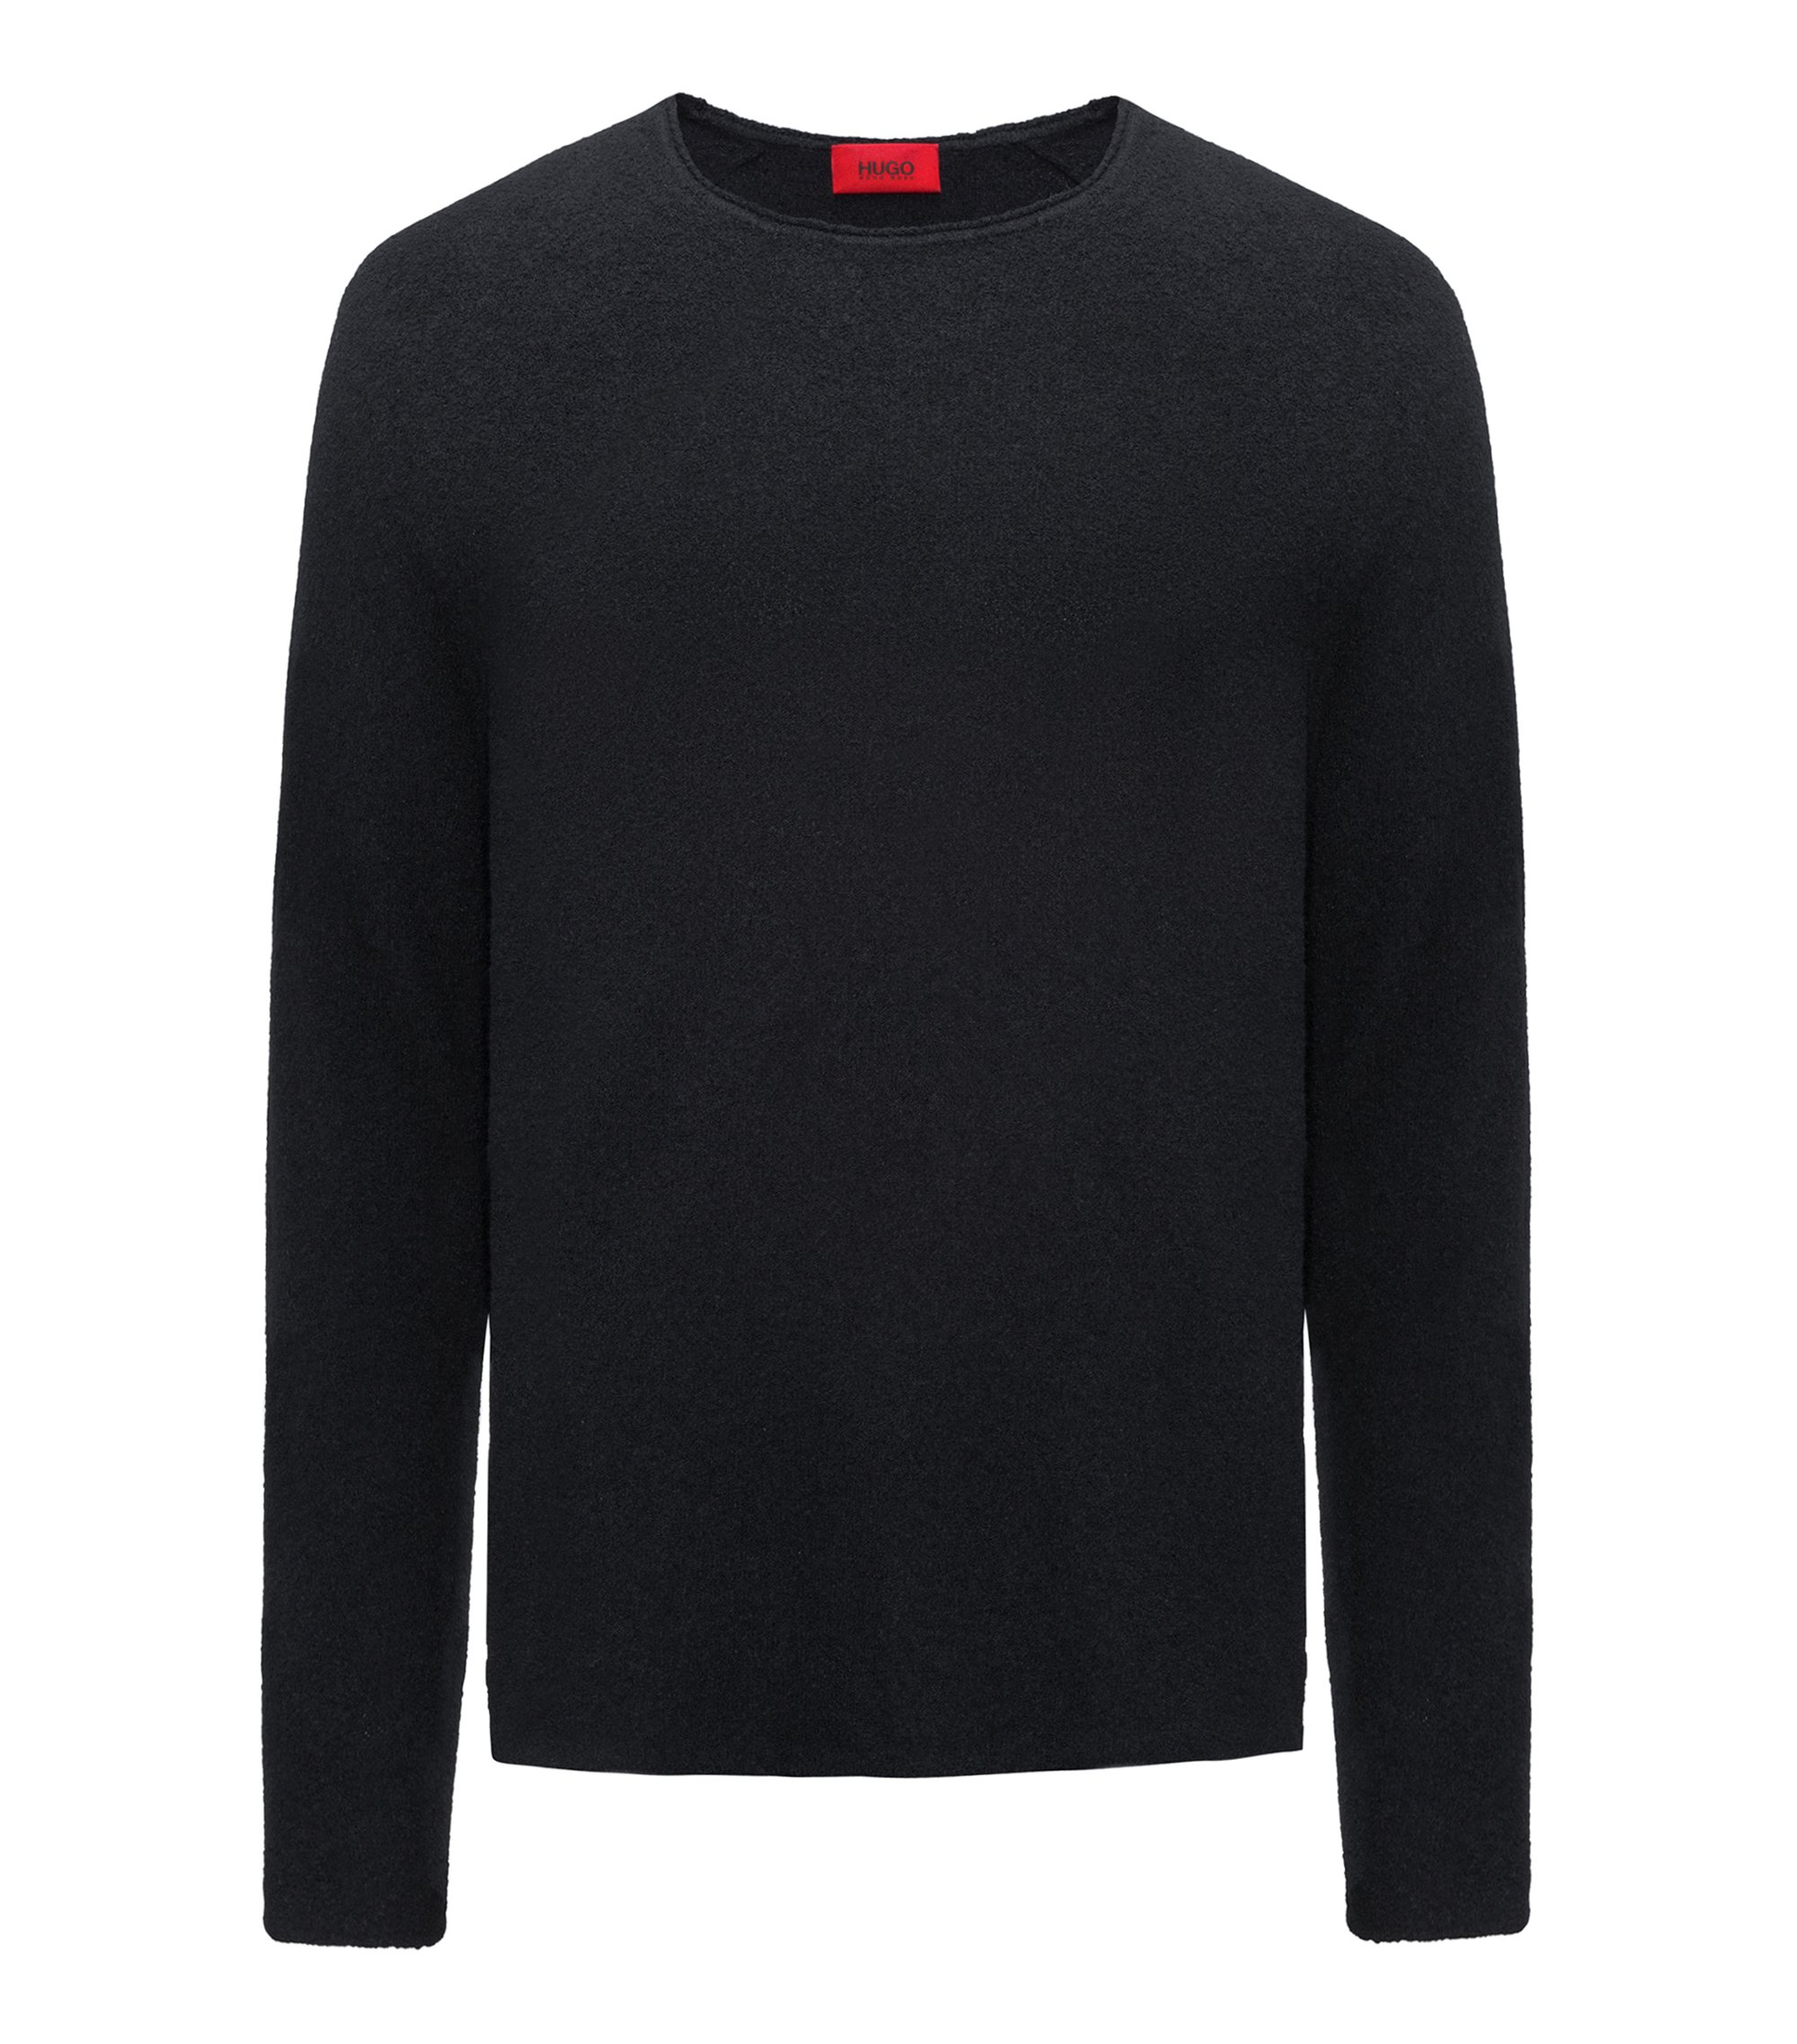 Cotton Blend Boucle Sweater | Solerino , Black